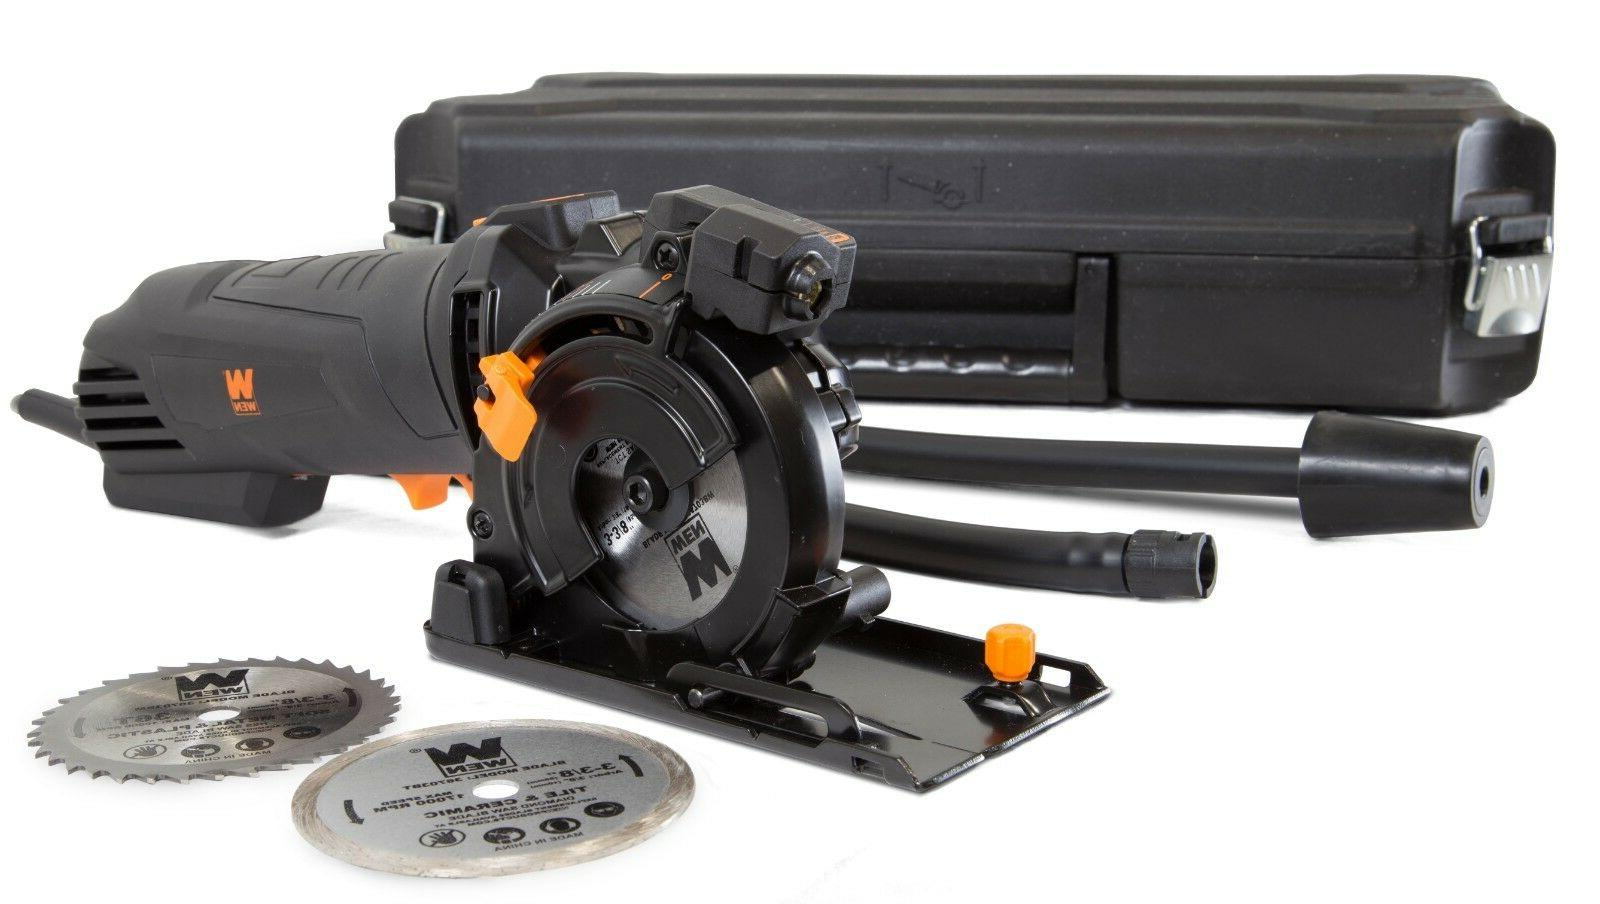 WEN 36704 Compact w/ Laser, Carrying Case, and 3 Blades